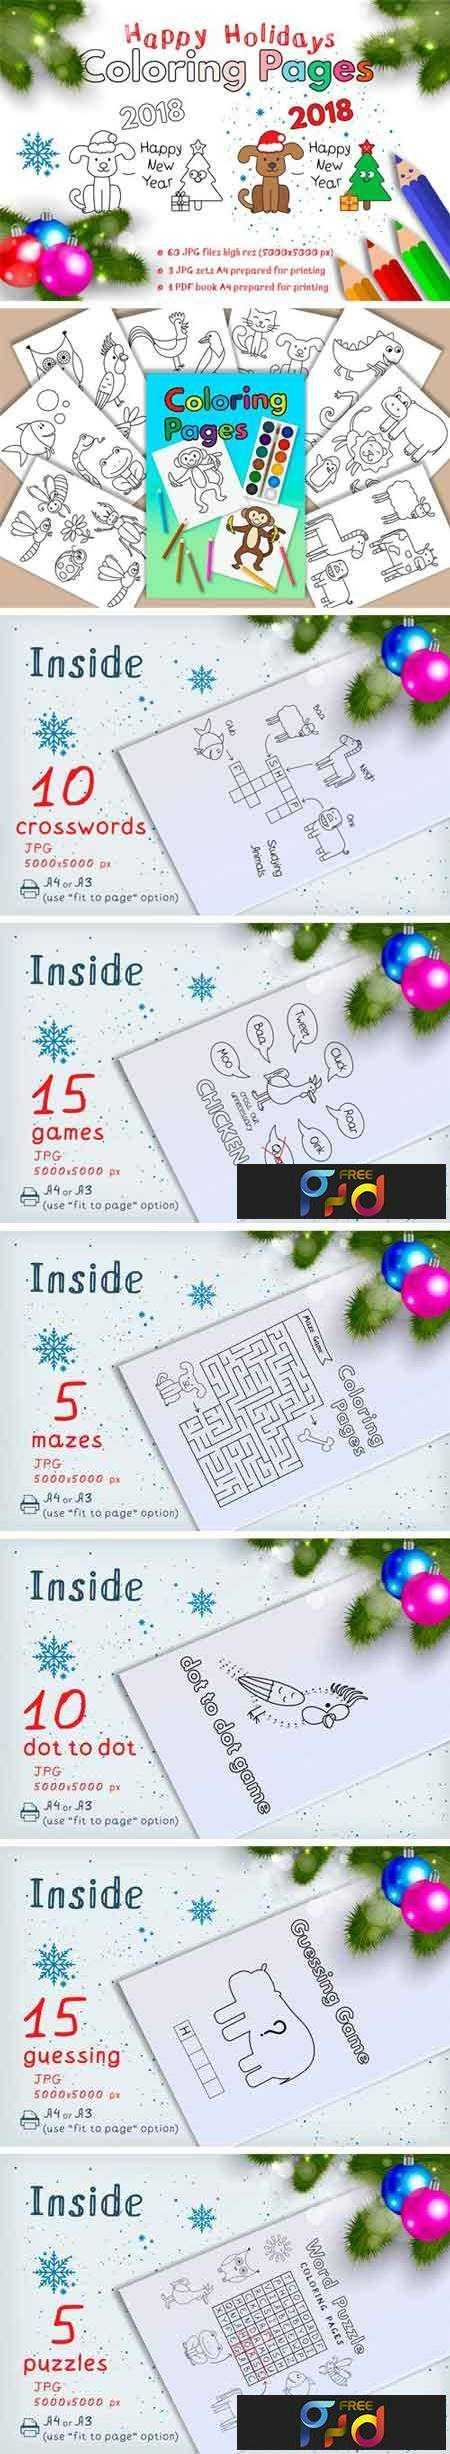 1801102 Happy Holidays Coloring Pages 2131939 1